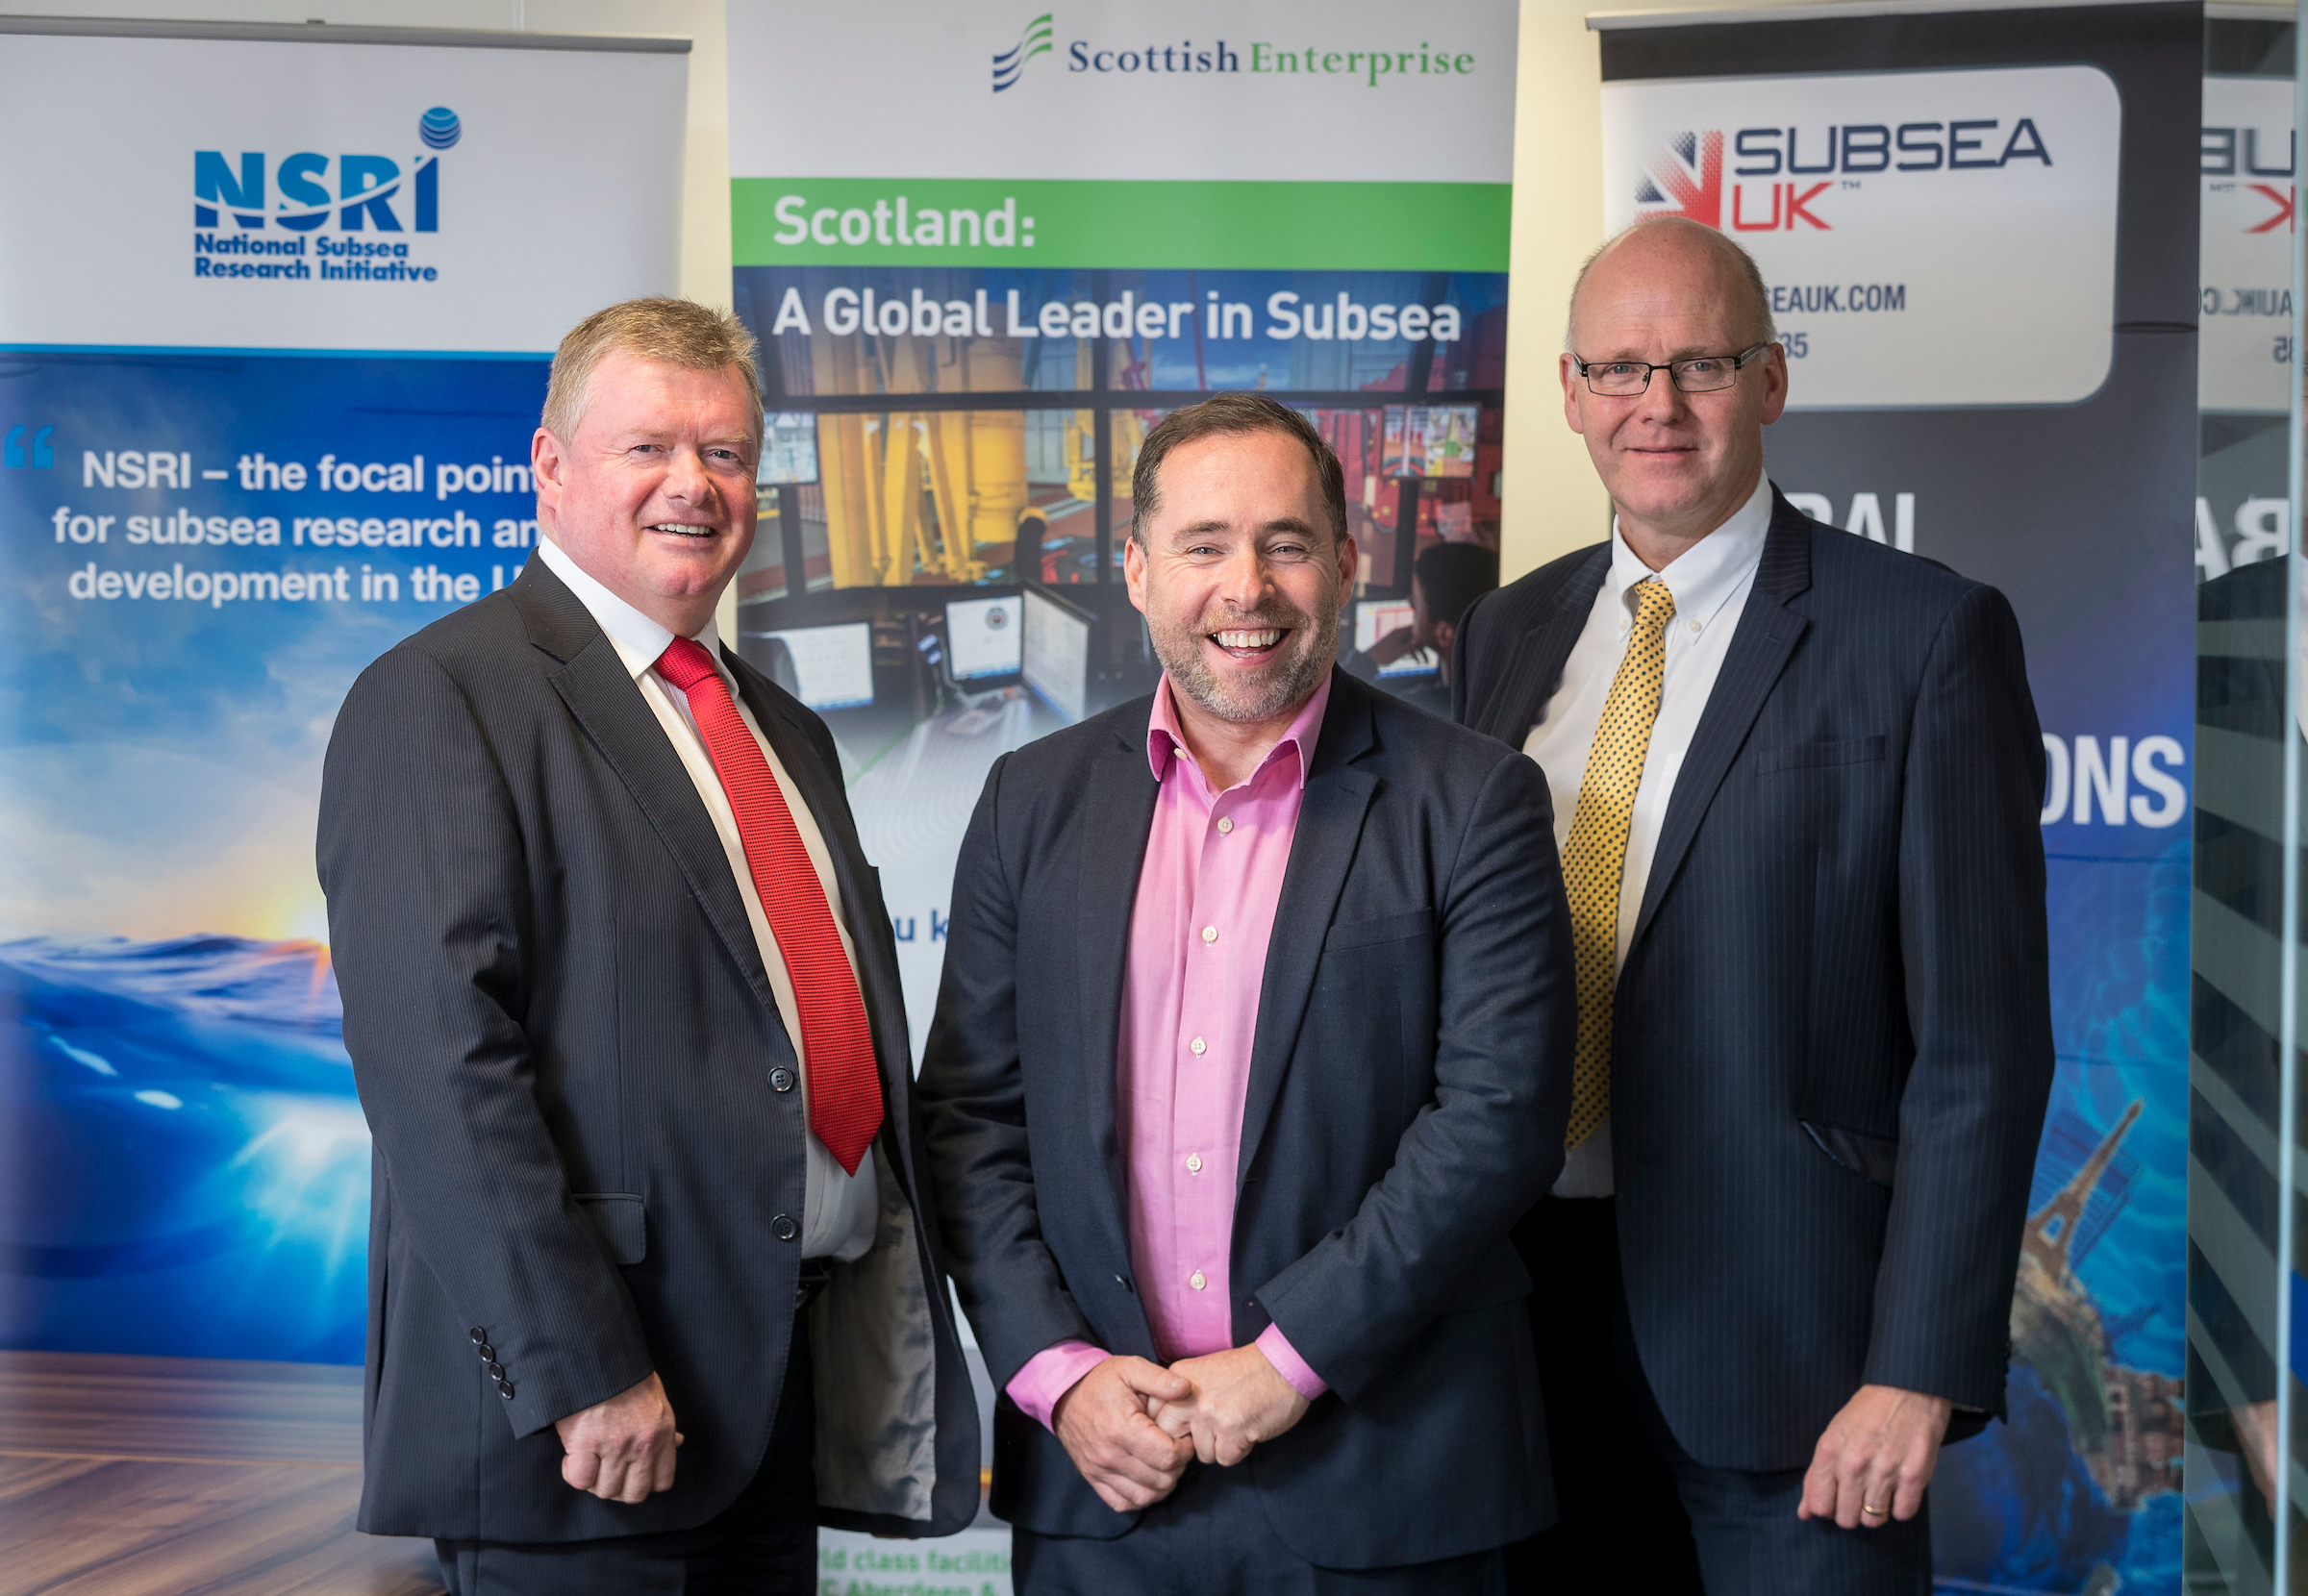 Tony J.A Laing, Director, National Subsea Research Initiative, David Rennie, Head of Energy, Oil and Gas, Scottish Enterprise and Neil Gordon, Chief Executive, Subsea UK.